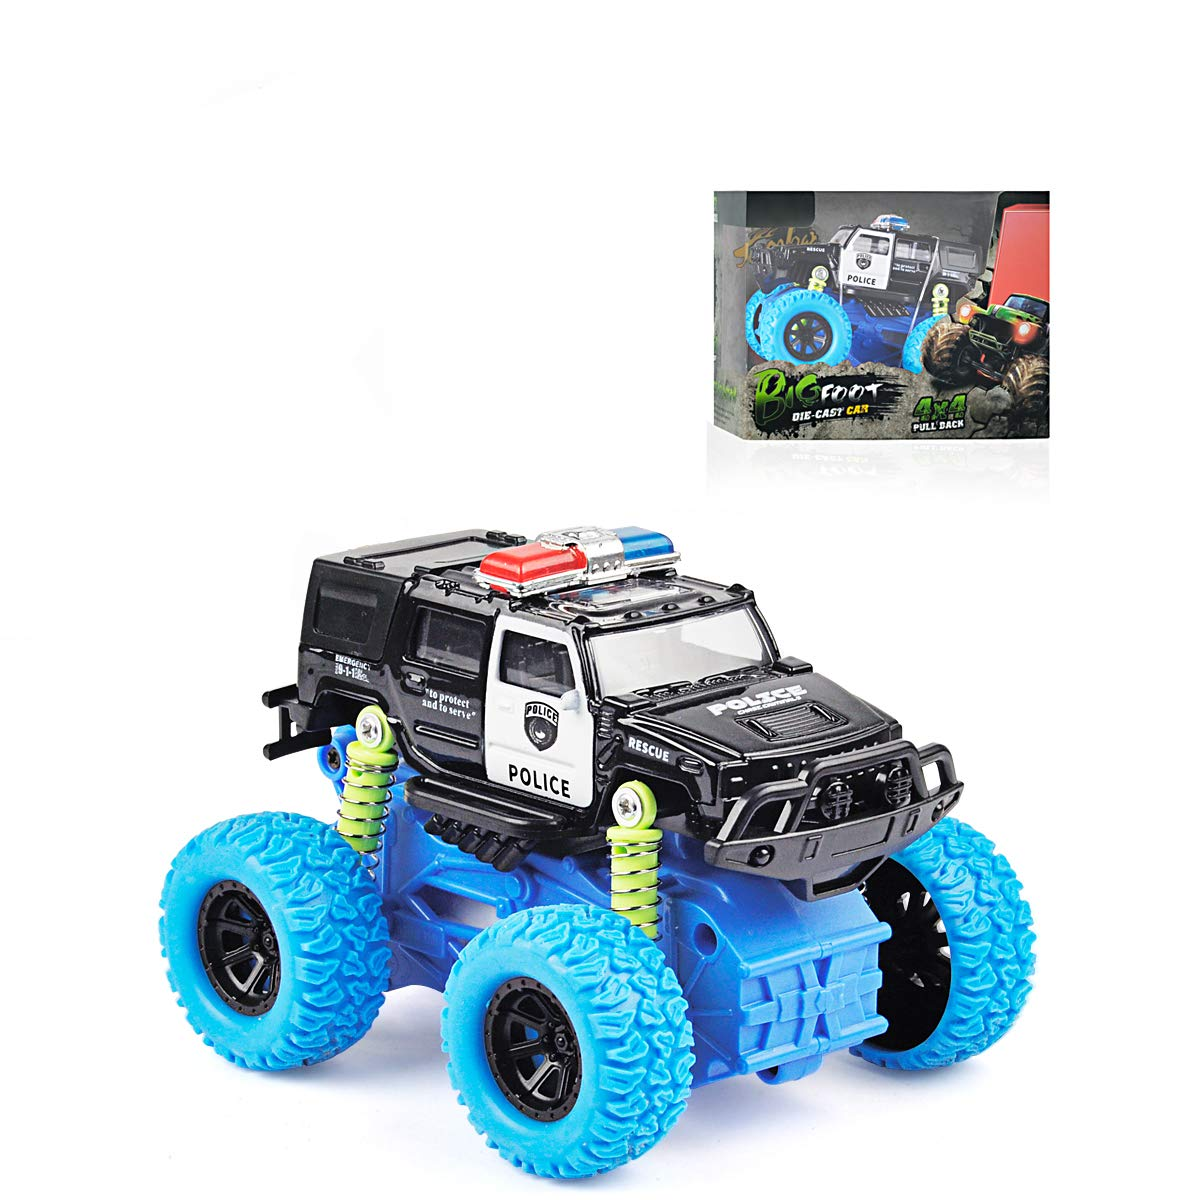 Baby Toys Toddler Police Car Toy Inertial Off-Road Vehicle Four-Wheel Drive Push and Go Simulation Alloy for 3 Year Old Boys Girls Kids Children Toddler Play Games Best Gift Black